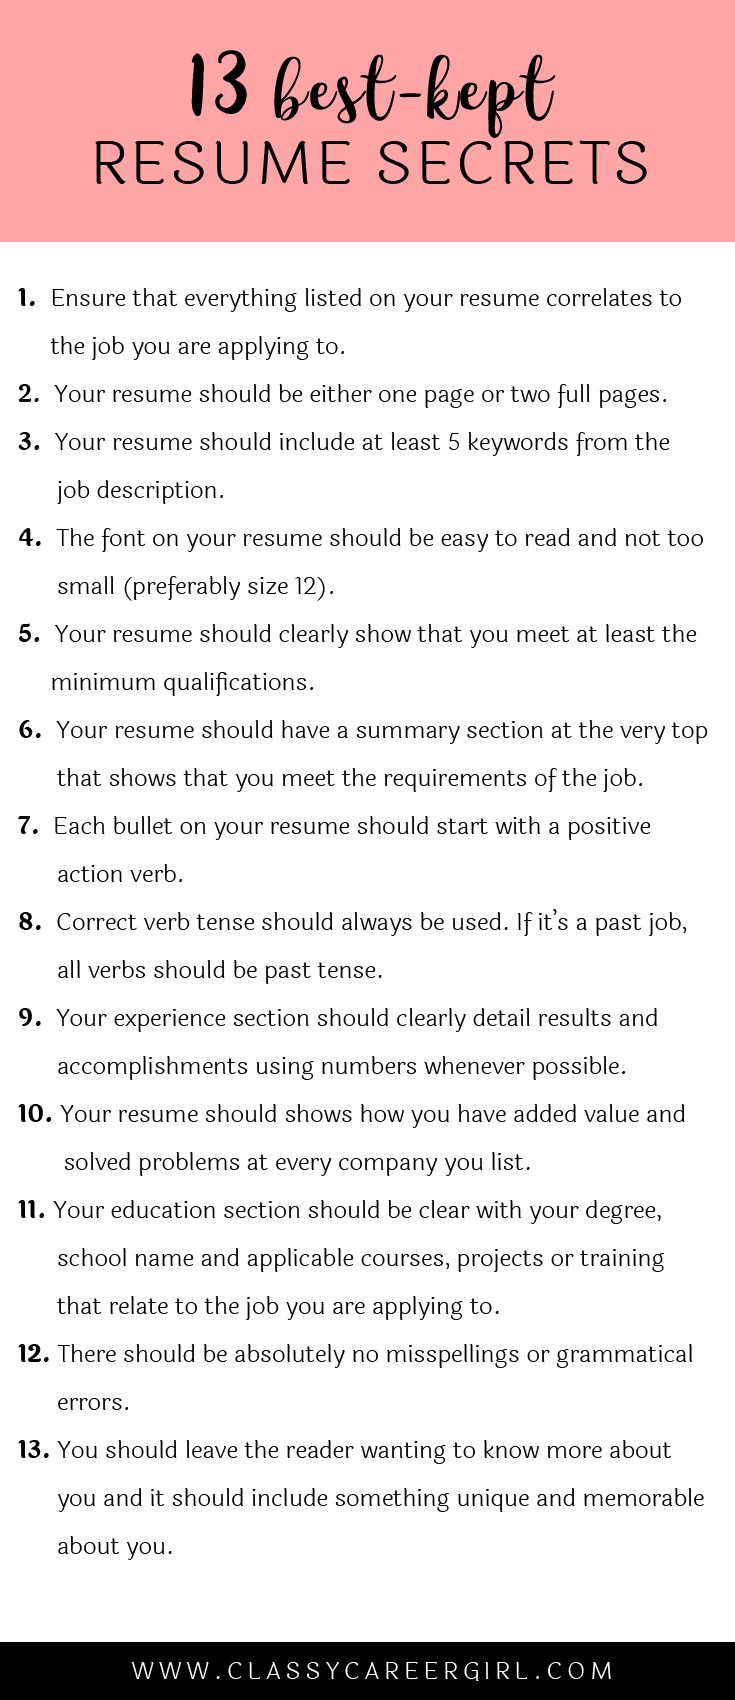 Opposenewapstandardsus  Terrific  Ideas About Resume On Pinterest  Cv Format Resume Cv And  With Engaging Some Hiring Managers Will Toss Your Resume Out If You Dont Know These  With Amusing How To Create A Resume Also Microsoft Word Resume Template In Addition Resume Templates Free And Administrative Assistant Resume As Well As Resume Summary Additionally Resume Samples From Pinterestcom With Opposenewapstandardsus  Engaging  Ideas About Resume On Pinterest  Cv Format Resume Cv And  With Amusing Some Hiring Managers Will Toss Your Resume Out If You Dont Know These  And Terrific How To Create A Resume Also Microsoft Word Resume Template In Addition Resume Templates Free From Pinterestcom